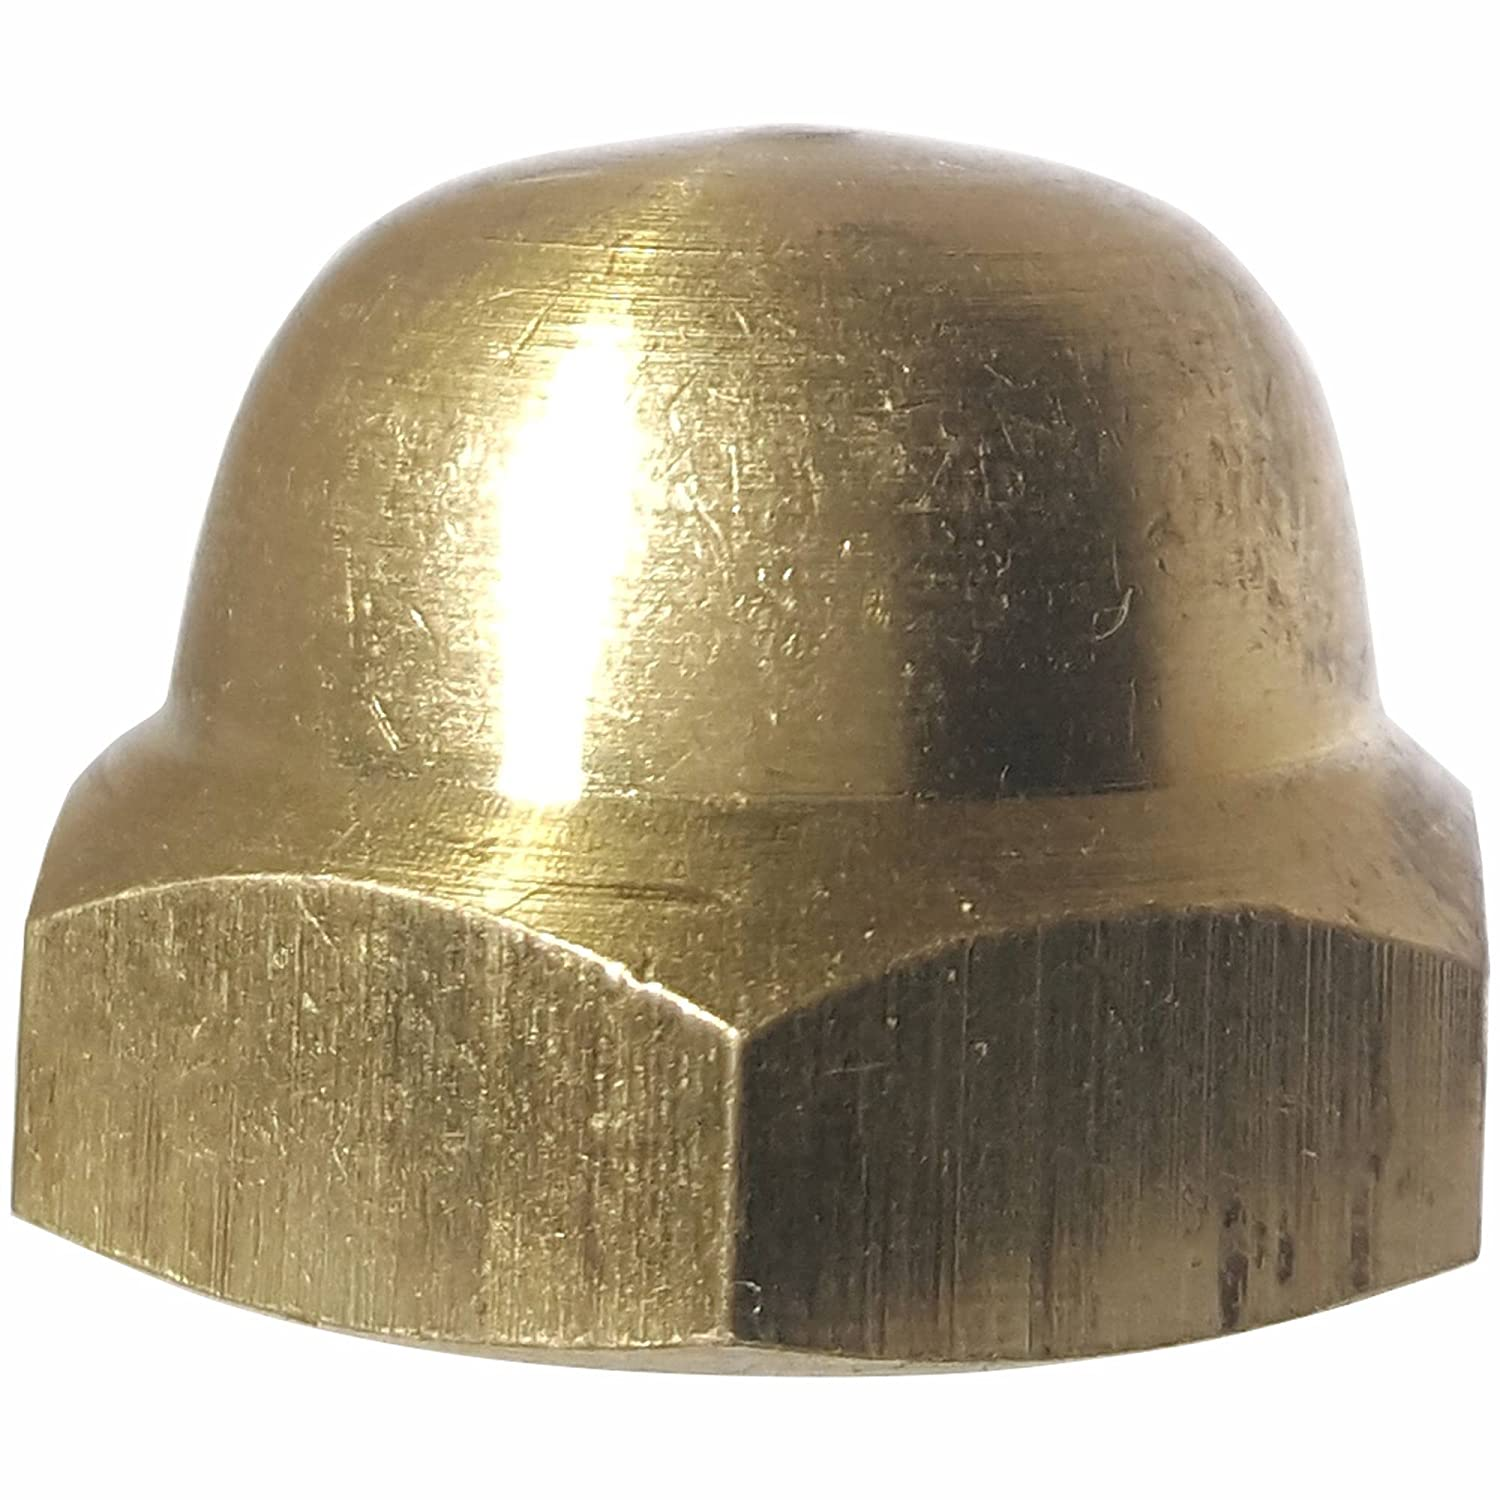 5/8-18 Hex Cap Nuts, Solid Brass, Grade 360, Commercial, Plain Finish, Quantity 5